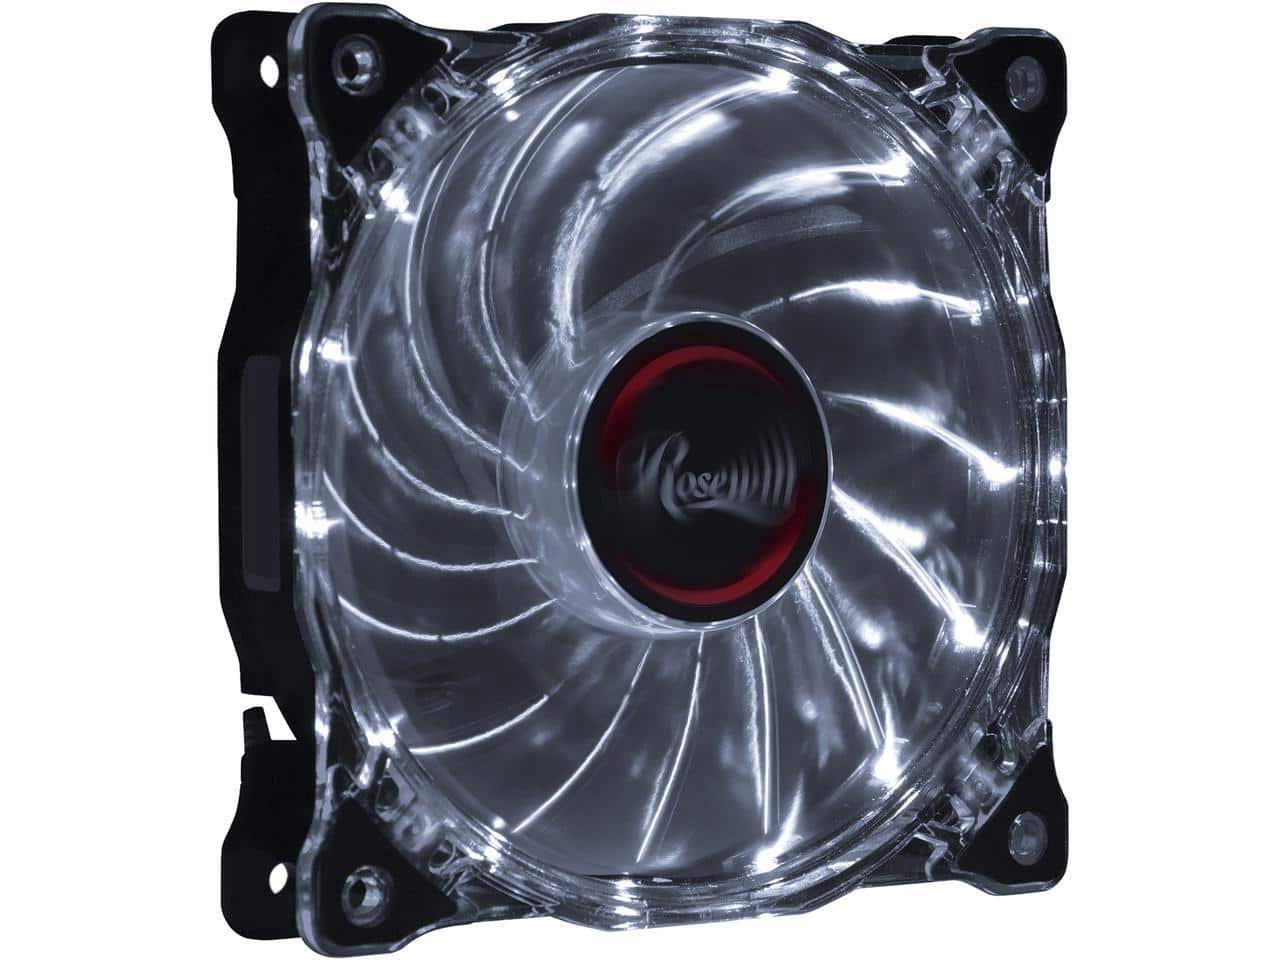 Rosewill 120mm CULLINAN Computer Case Cooling Fan with LP4 Adapter - Semi-Transparent Frame & White LED Lights $  10.99 + $  7 GC